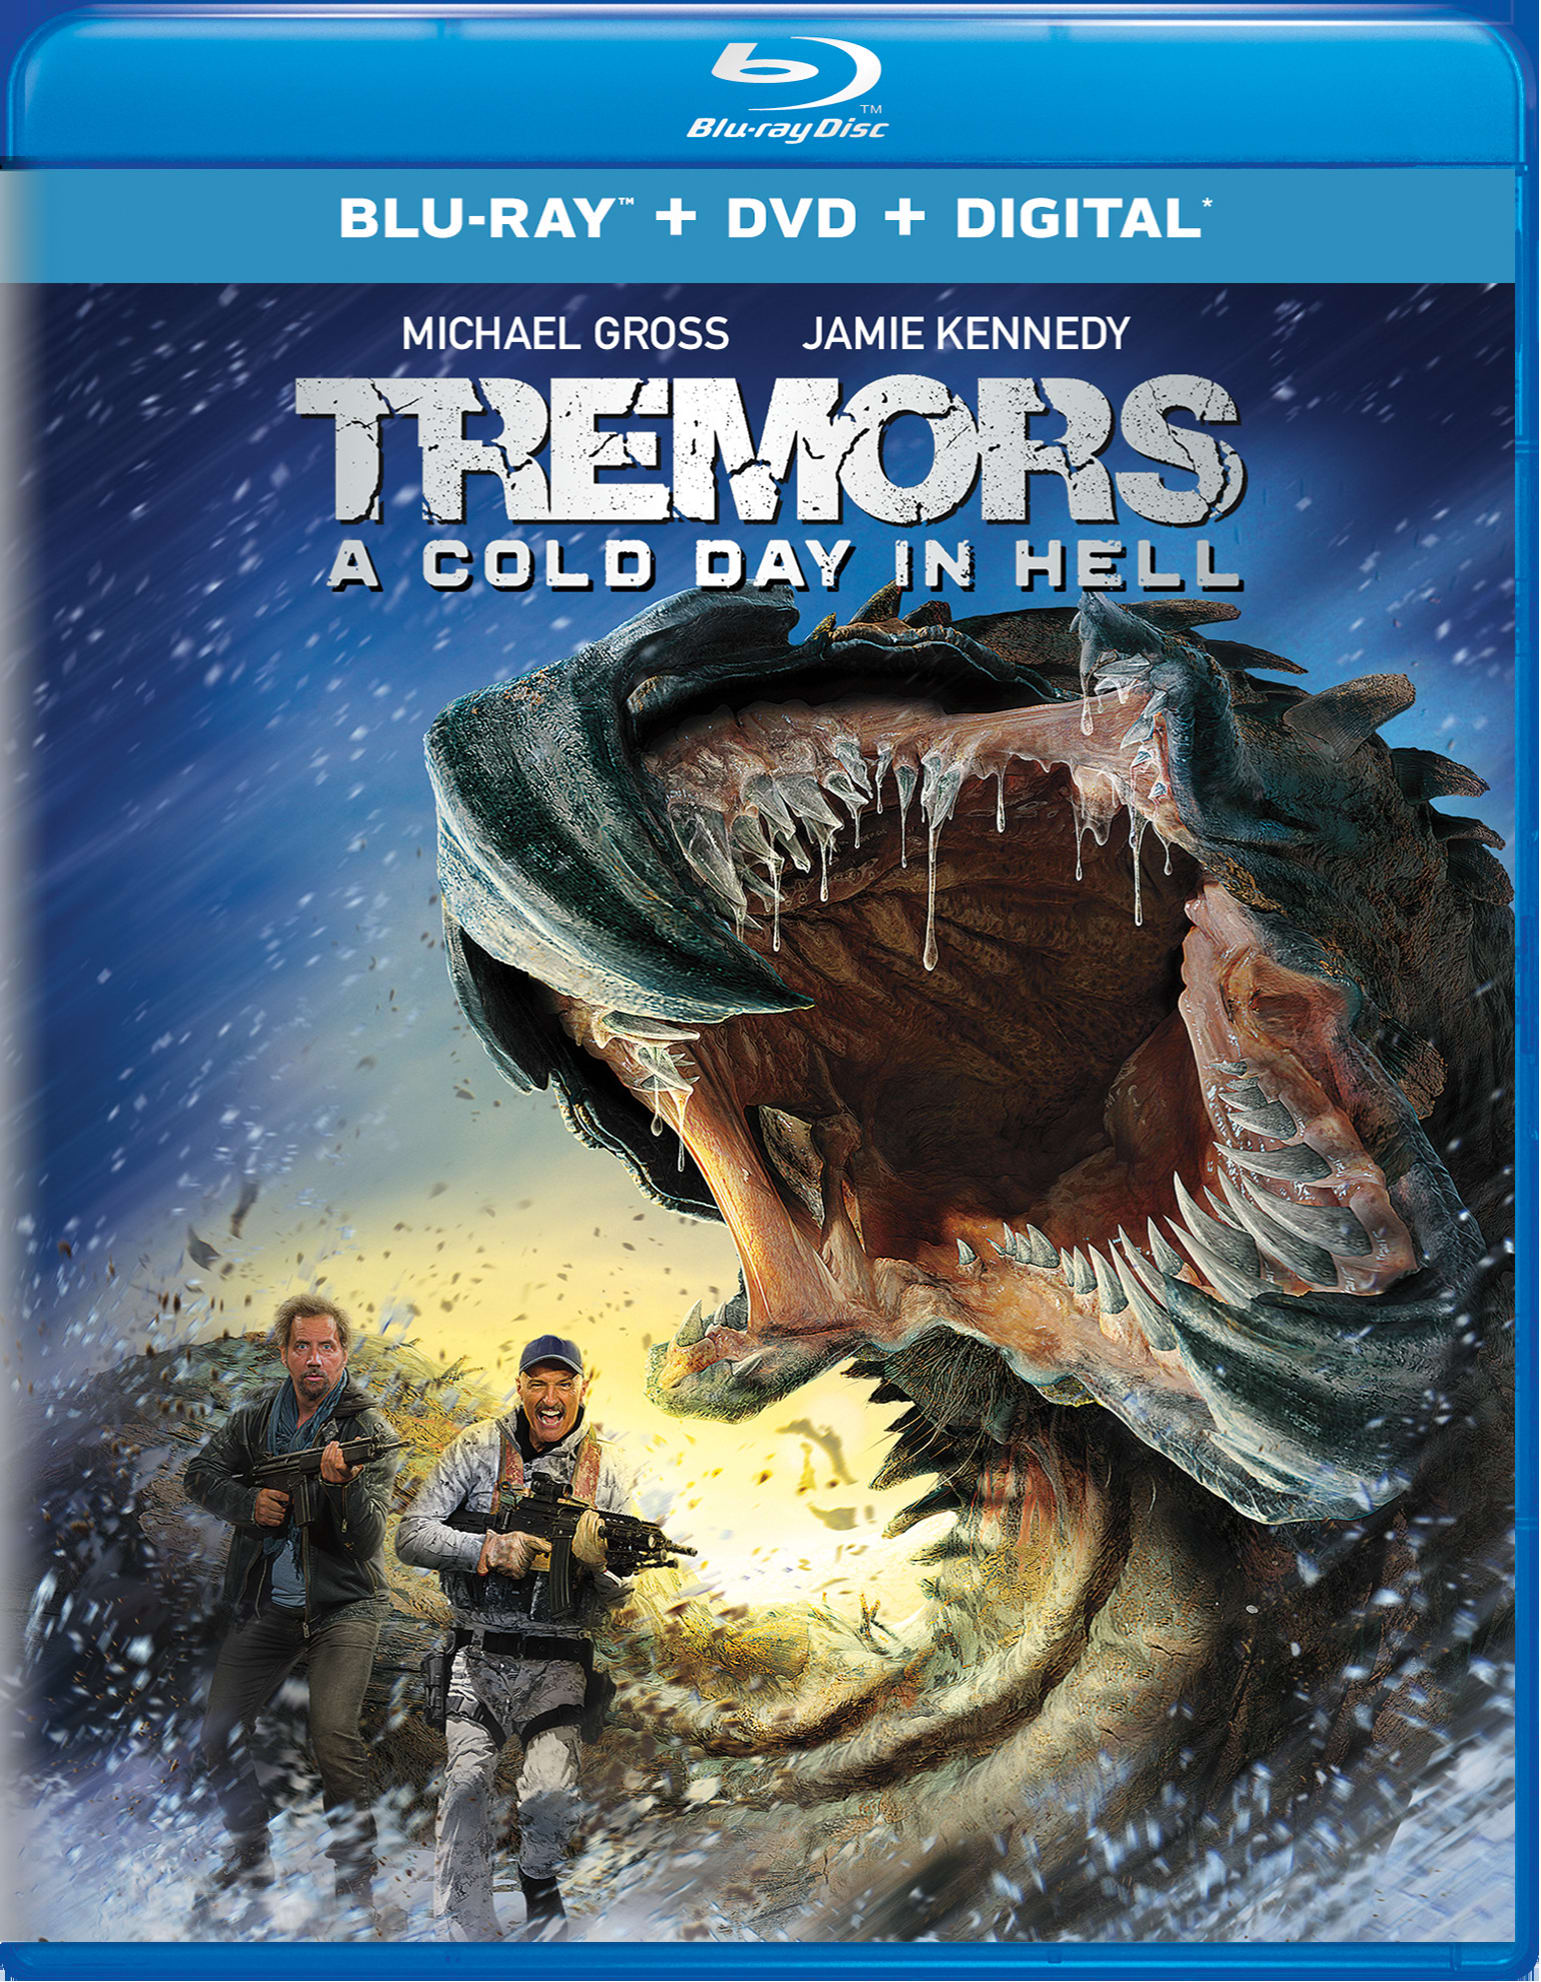 Tremors: A Cold Day in Hell (DVD + Digital) [Blu-ray]